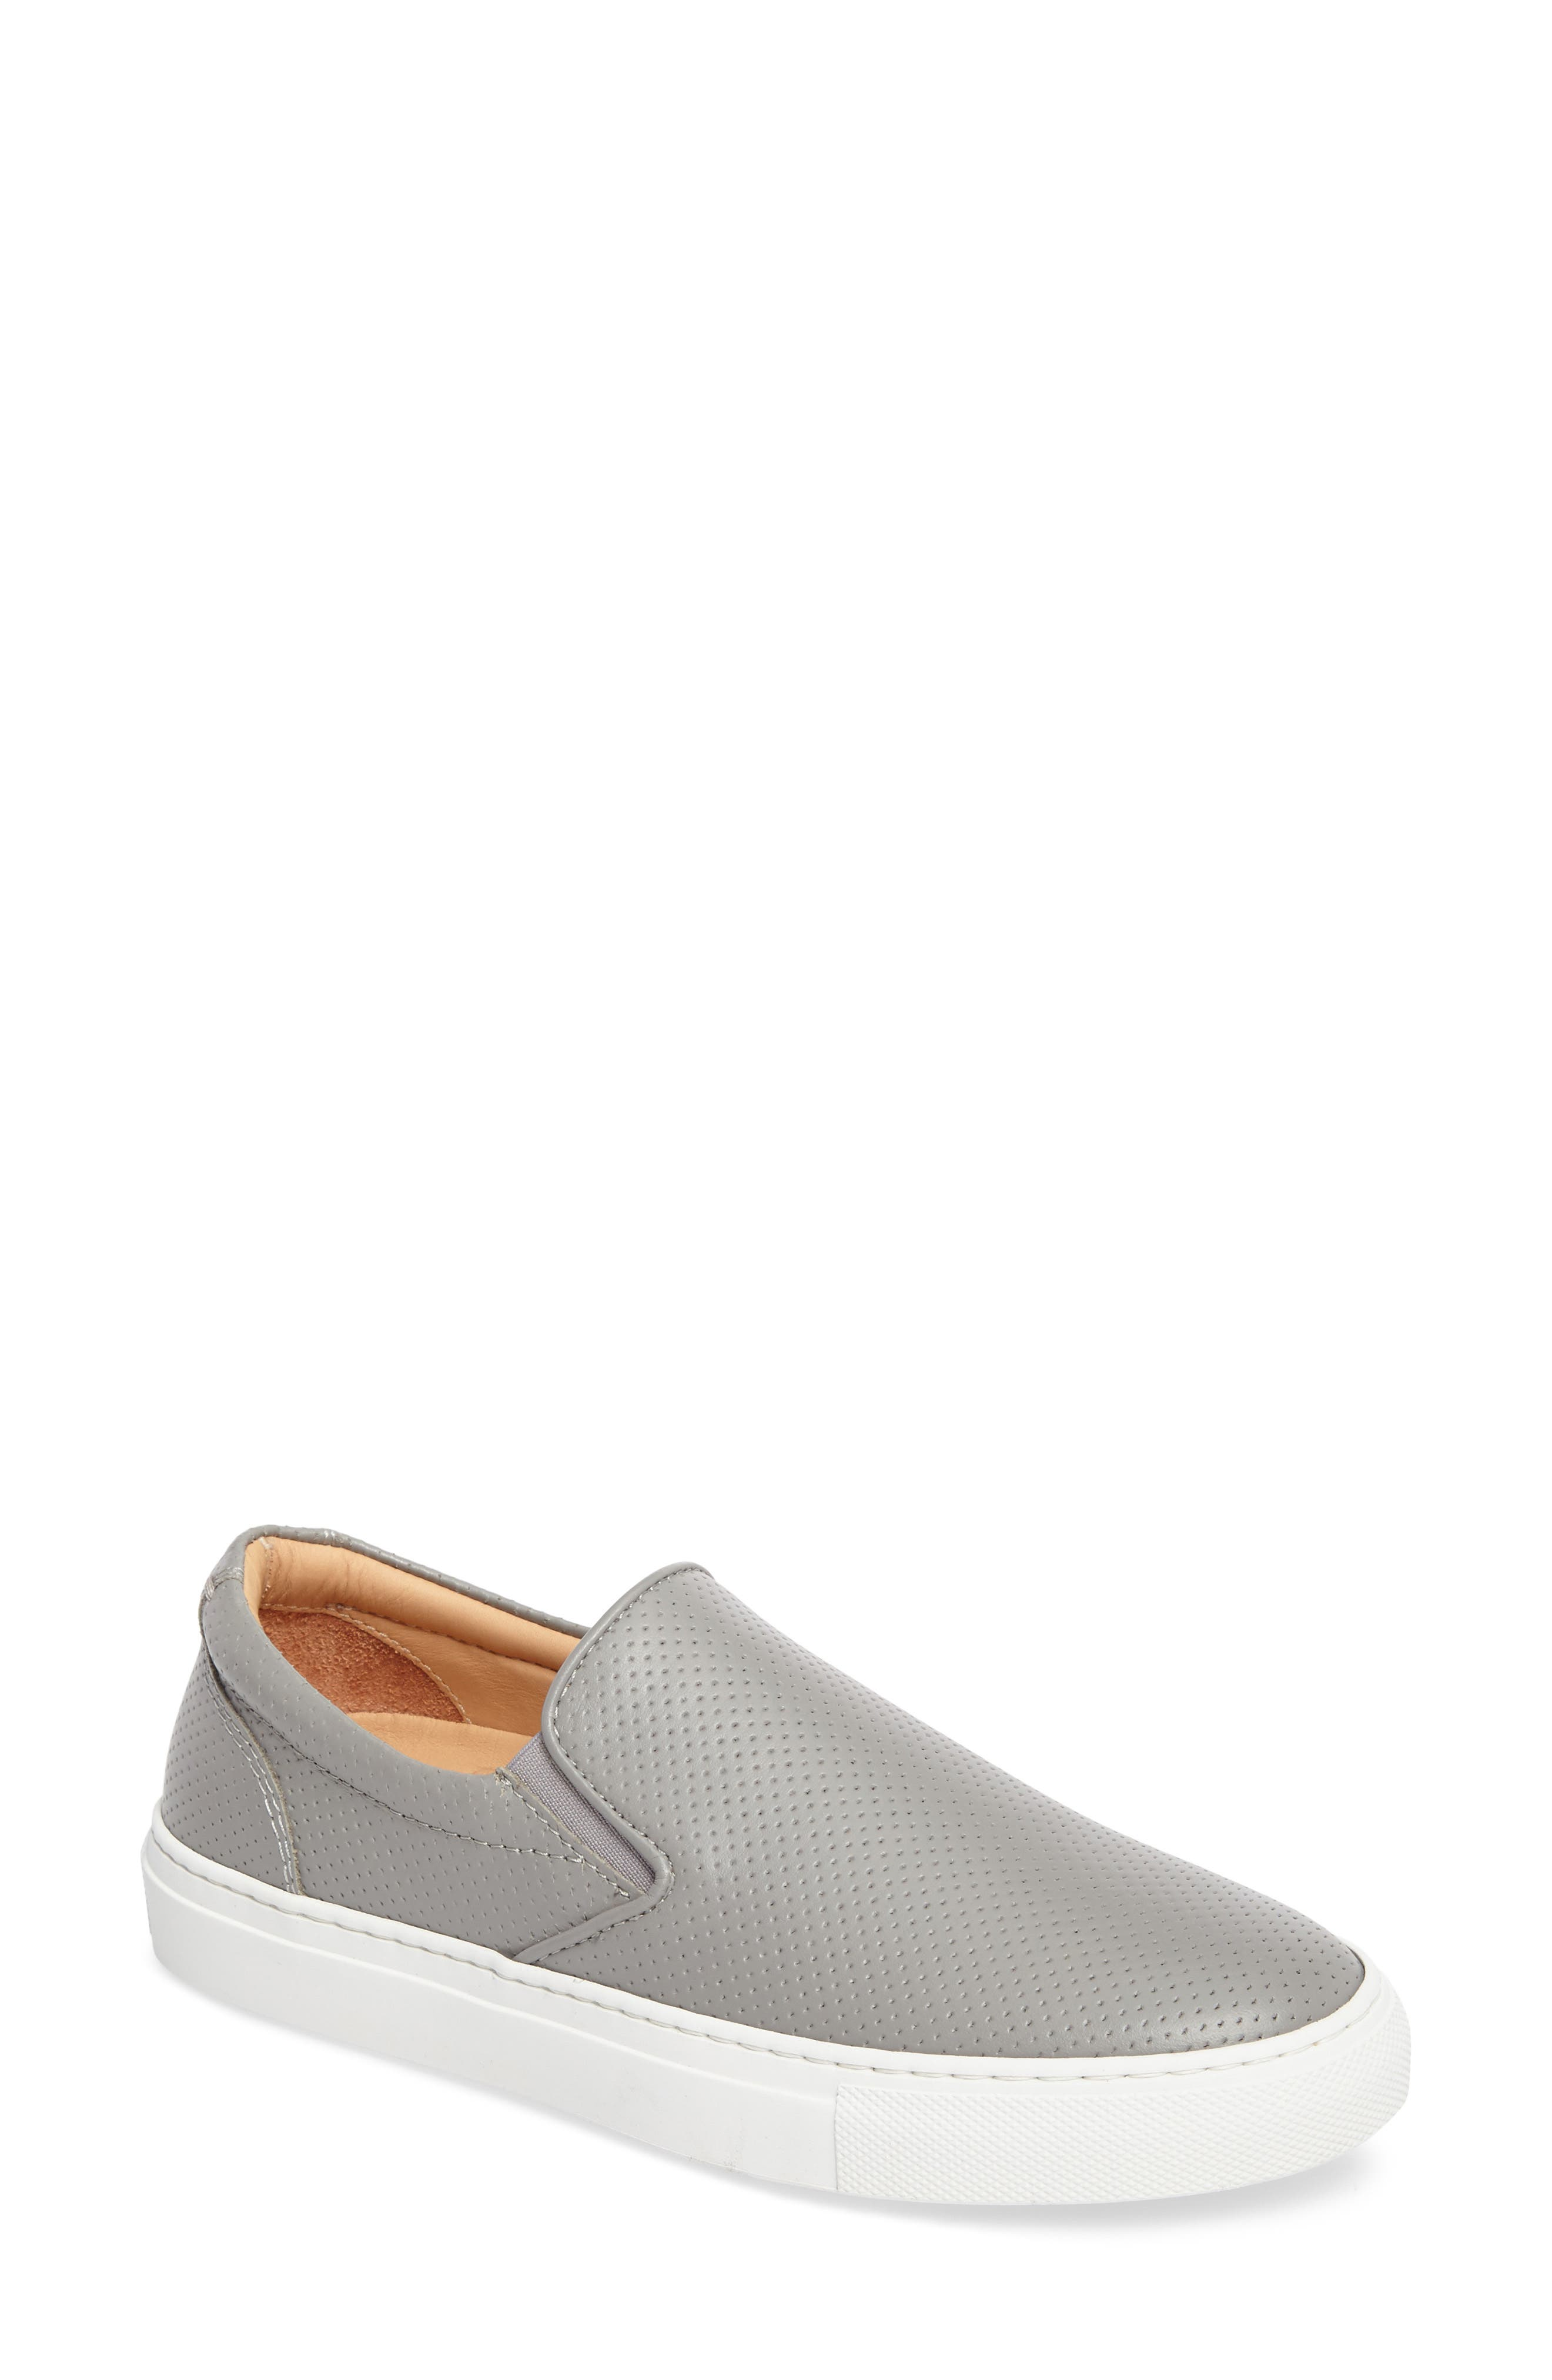 Wooster Slip-On Sneaker,                         Main,                         color, GREY PERFORATED